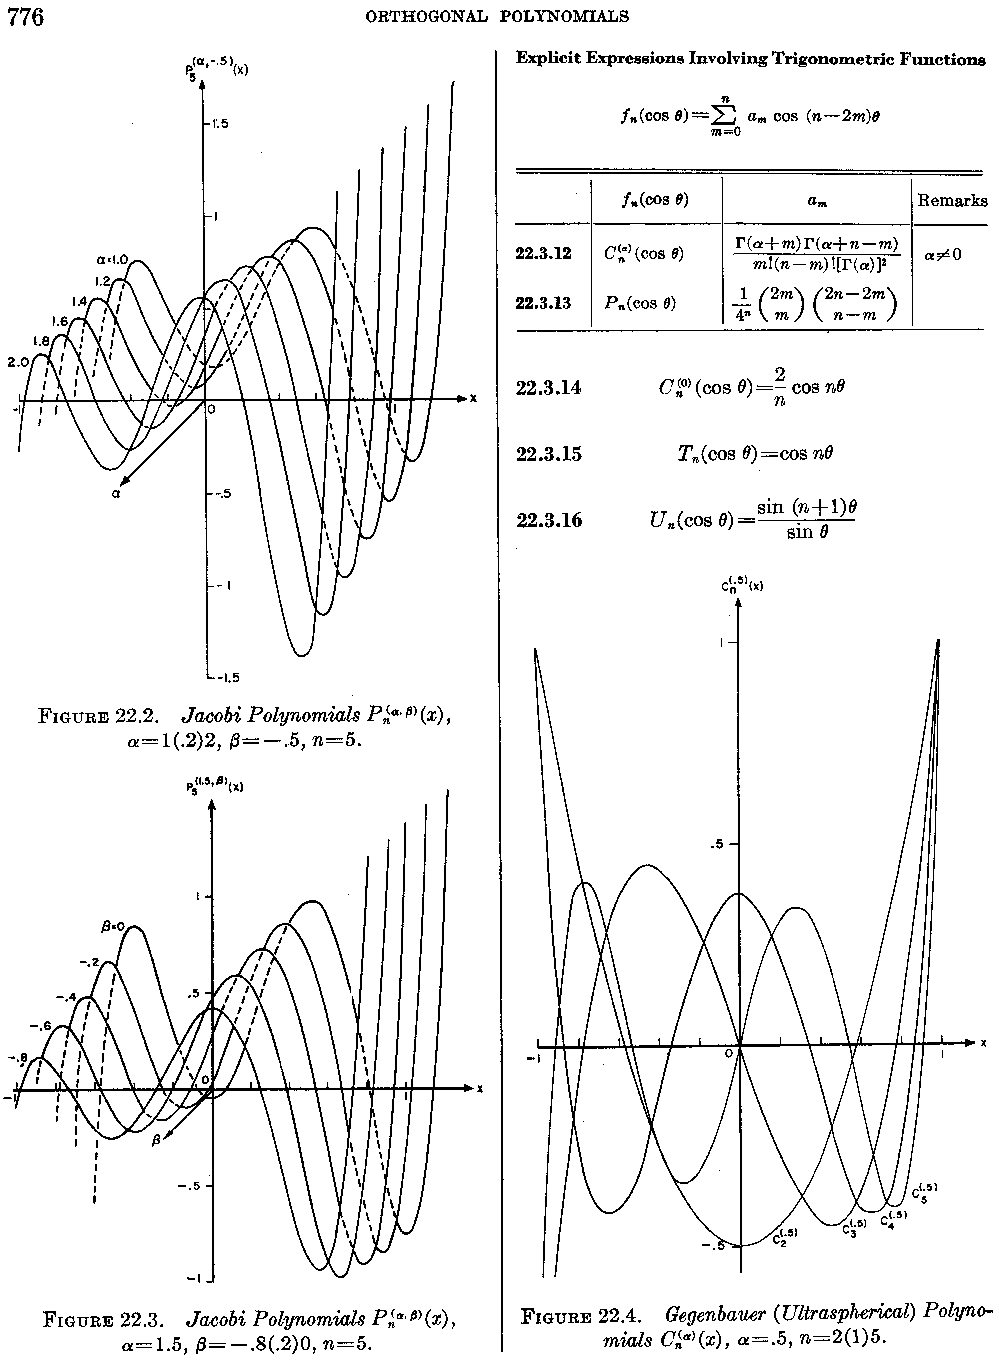 Handbook of Mathematical Functions (AMS55 Online), p. 776